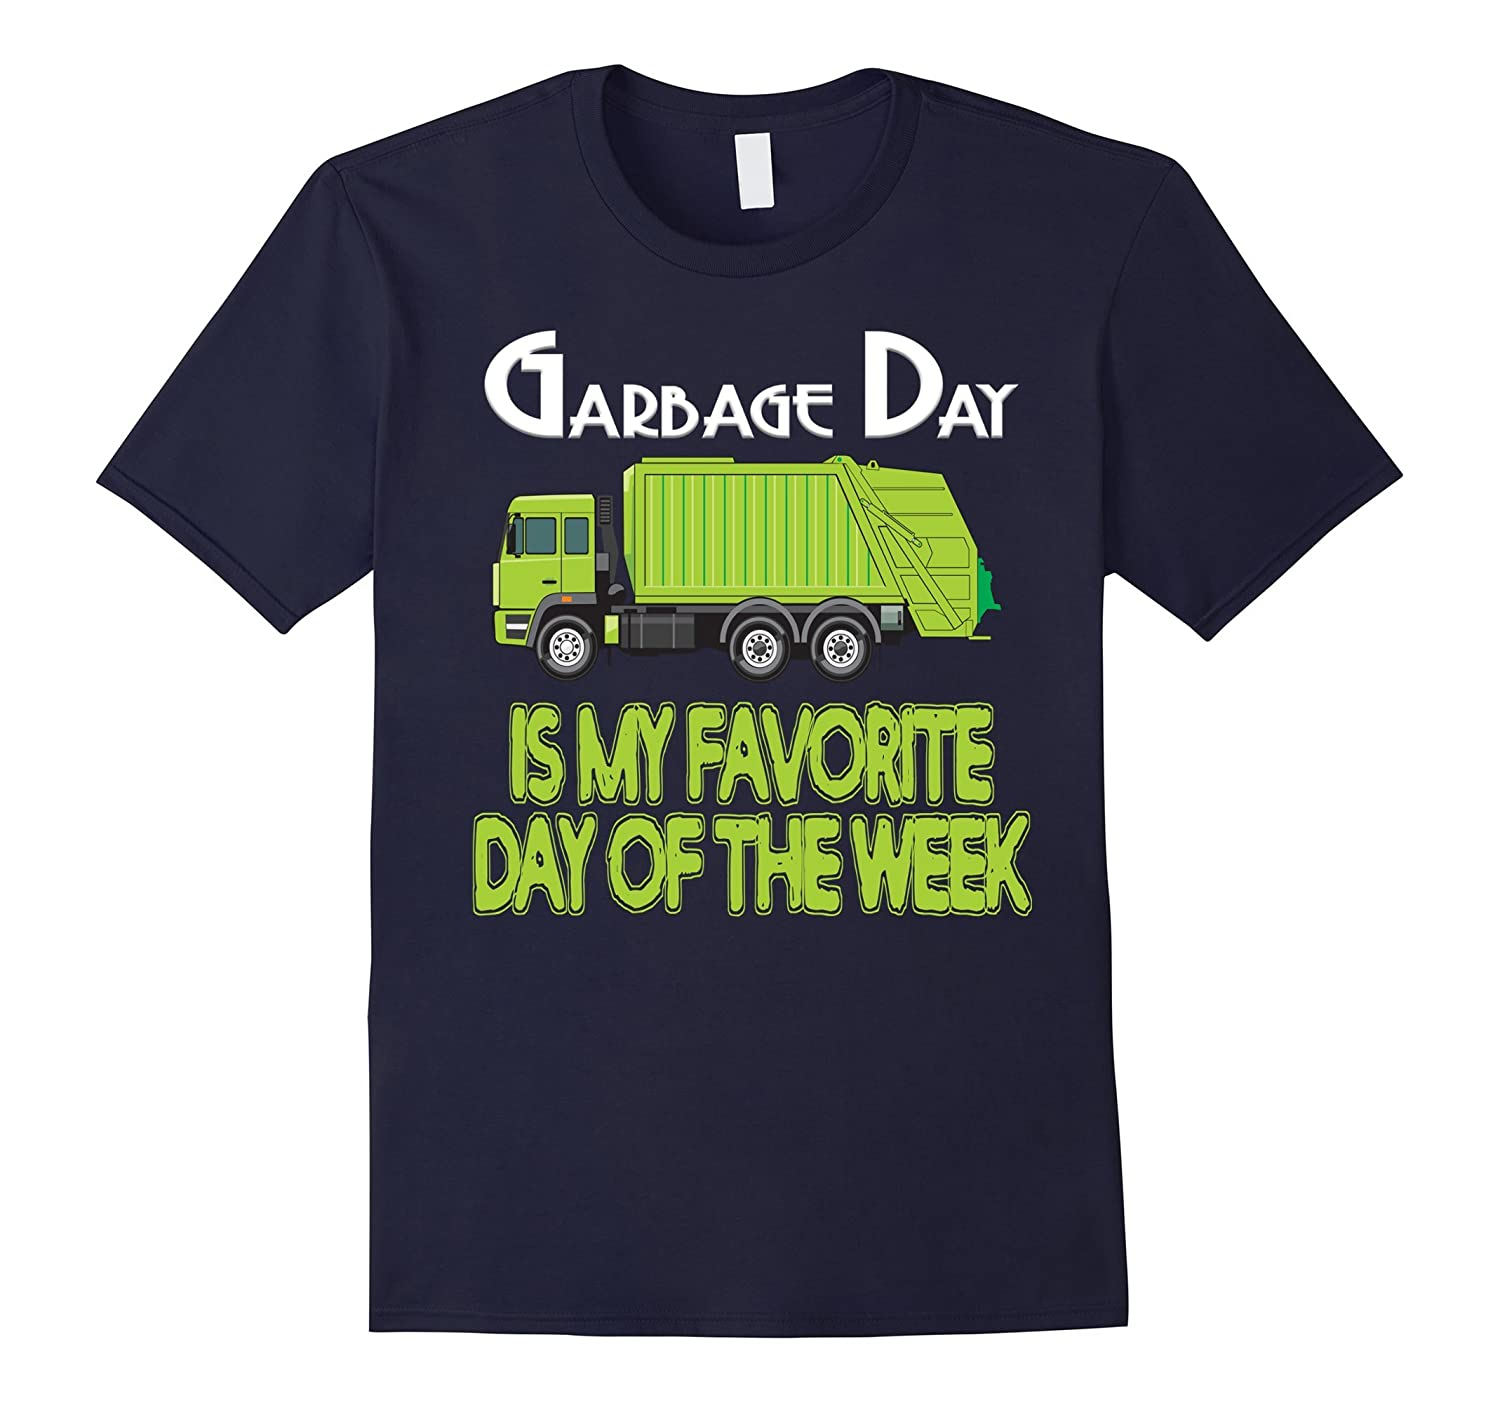 Get ready garbage truck coloring book - Amazon Com Garbage Day Truck T Shirt Kids Boys Girls Adult Trash Shirt Clothing